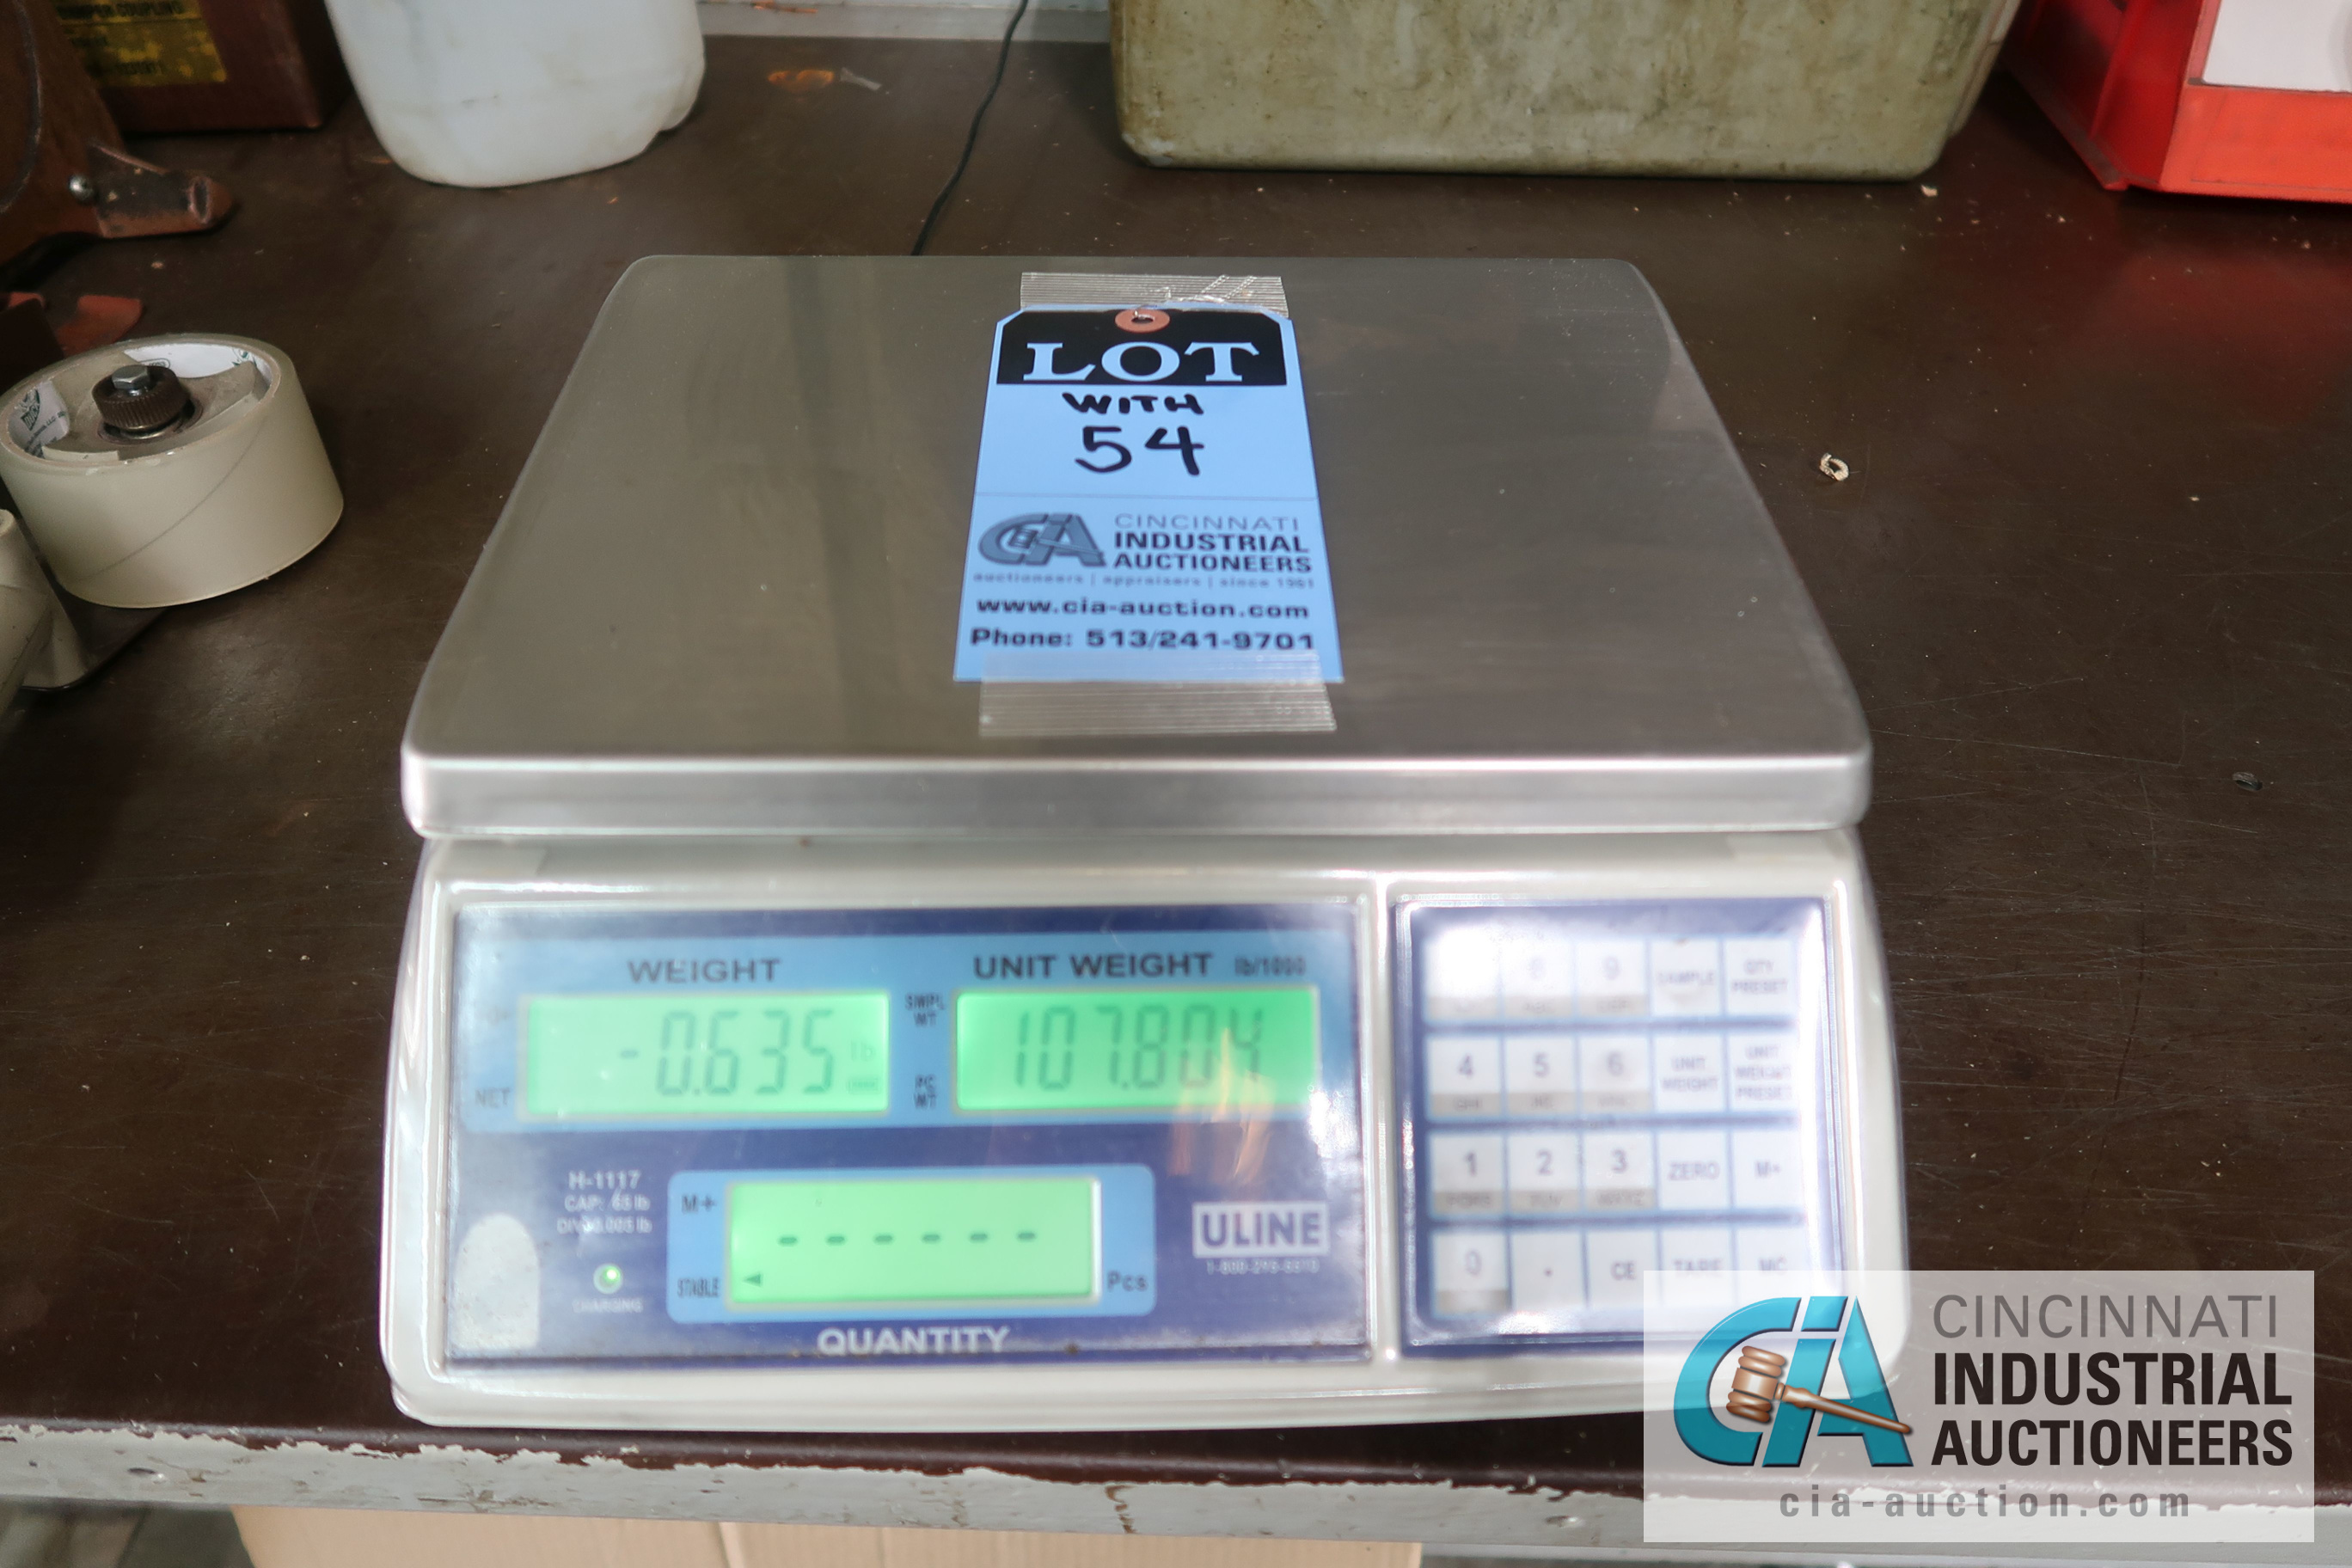 100 LB. CAPACITY METTLER-TOLEDO MODEL 8582 COUNTING SCALES WITH (1) 65 LB. CAPACITY ULINE MODEL H- - Image 3 of 3